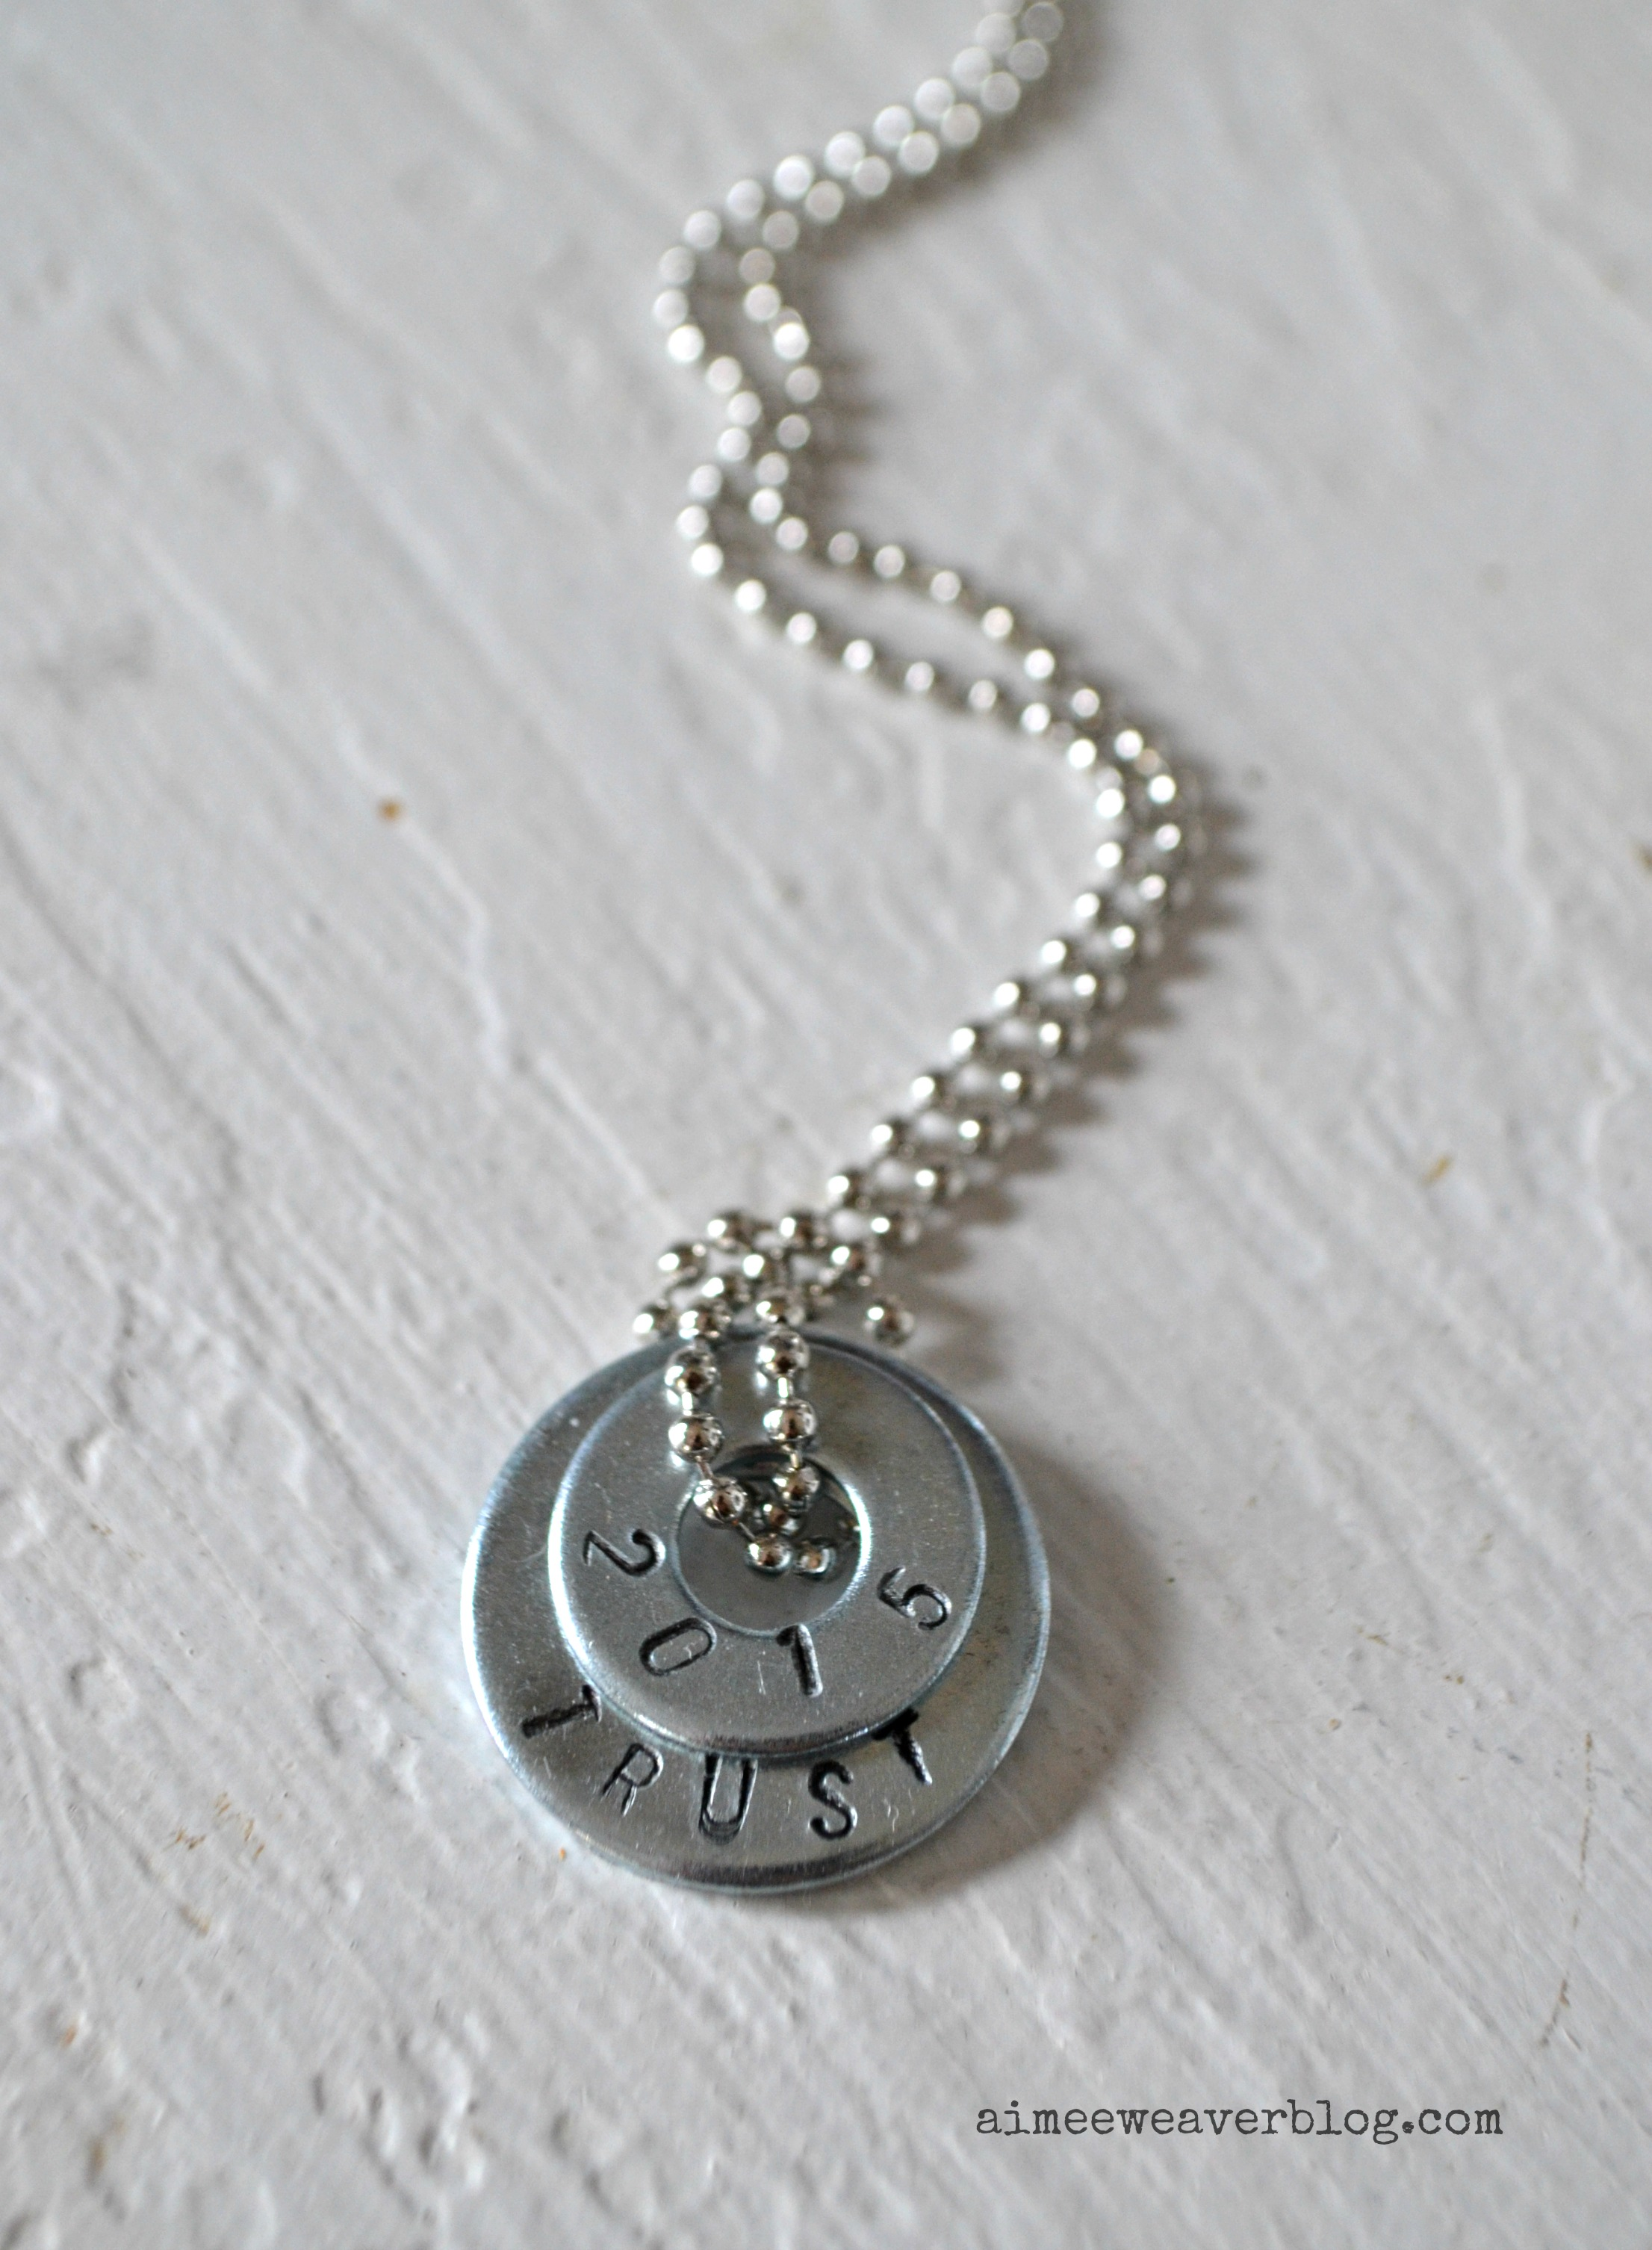 sted washer necklace diy aimee weaver designs llc